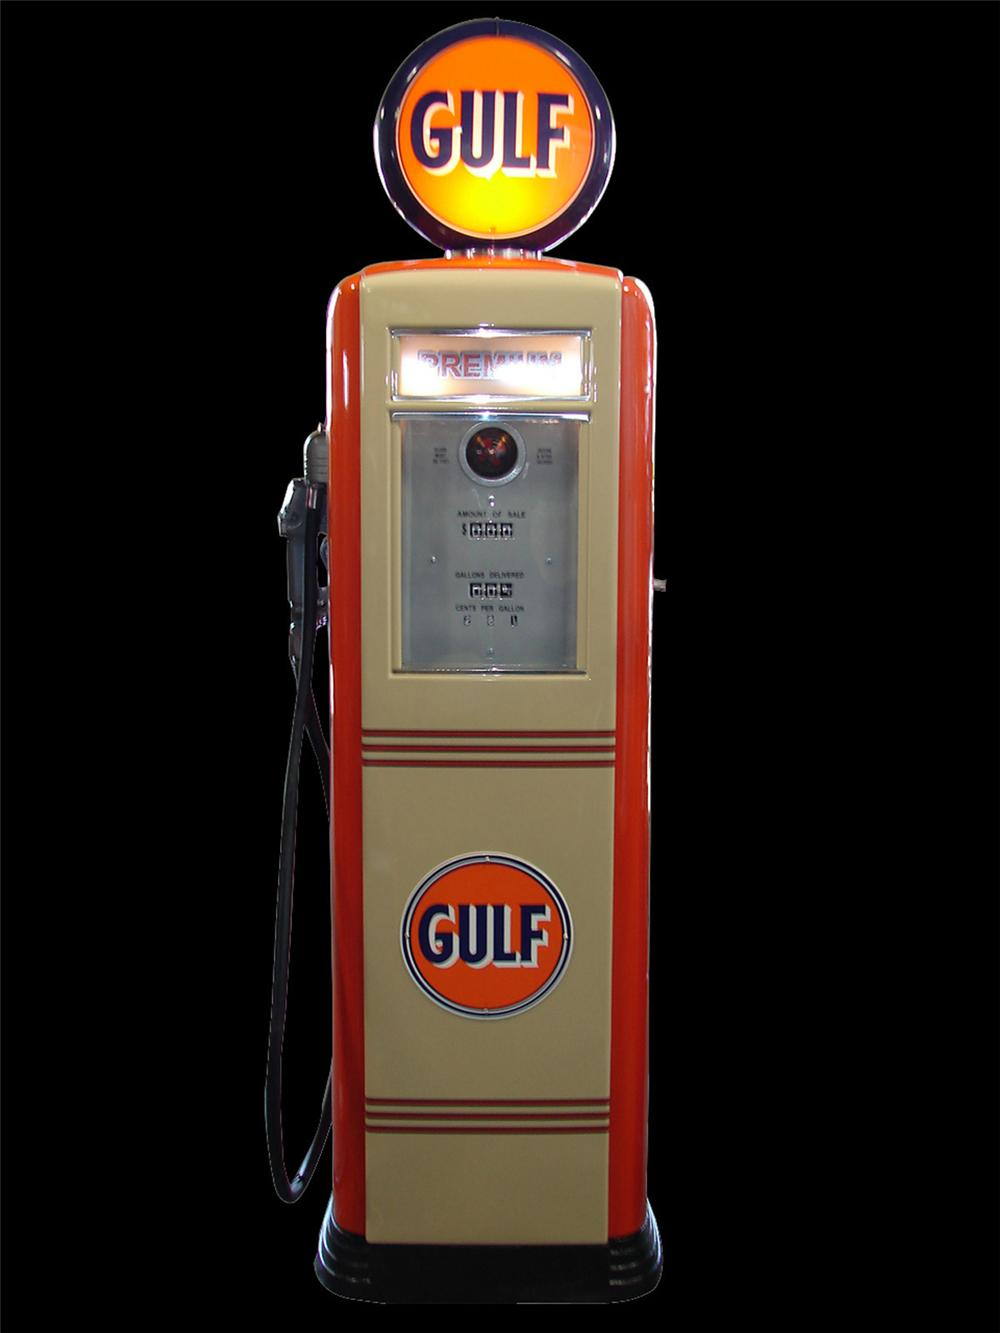 Wonderful 1949 Gulf Gasoline Tokheim model 39 service station gas pump. - Front 3/4 - 130816